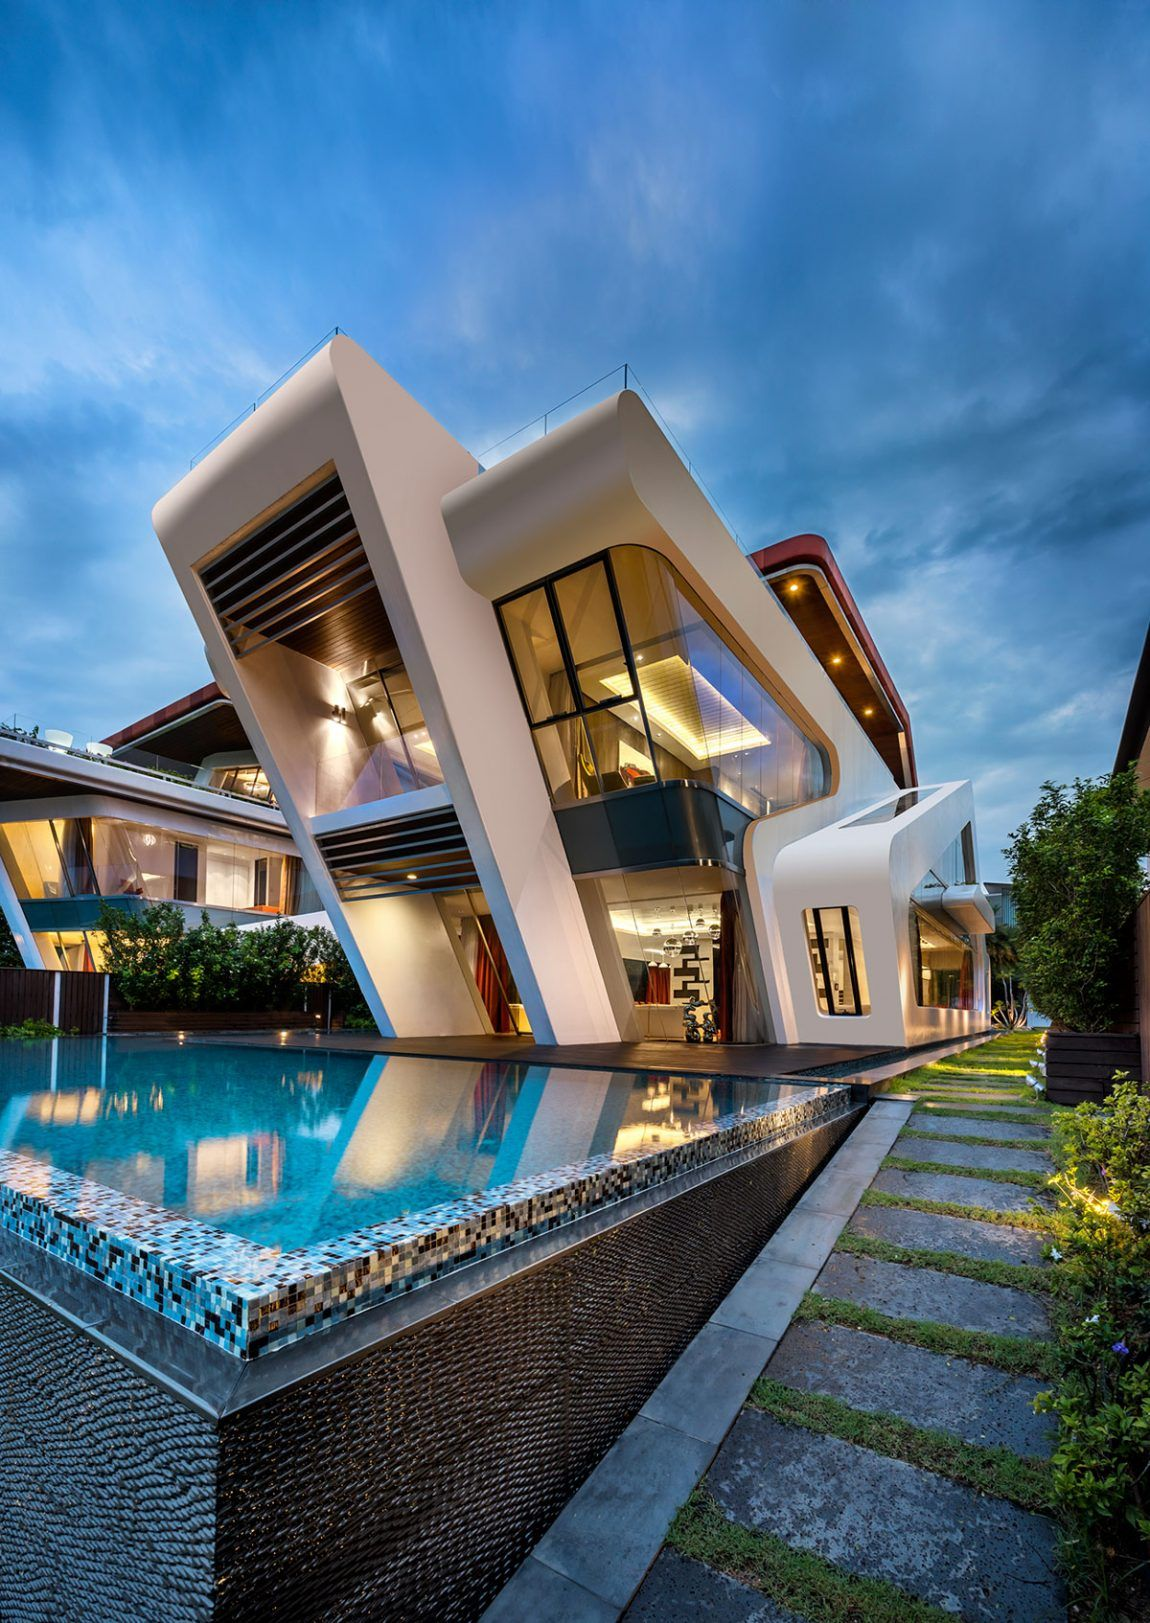 mercurio design lab create a modern villa in singapore - Modern Design Homes